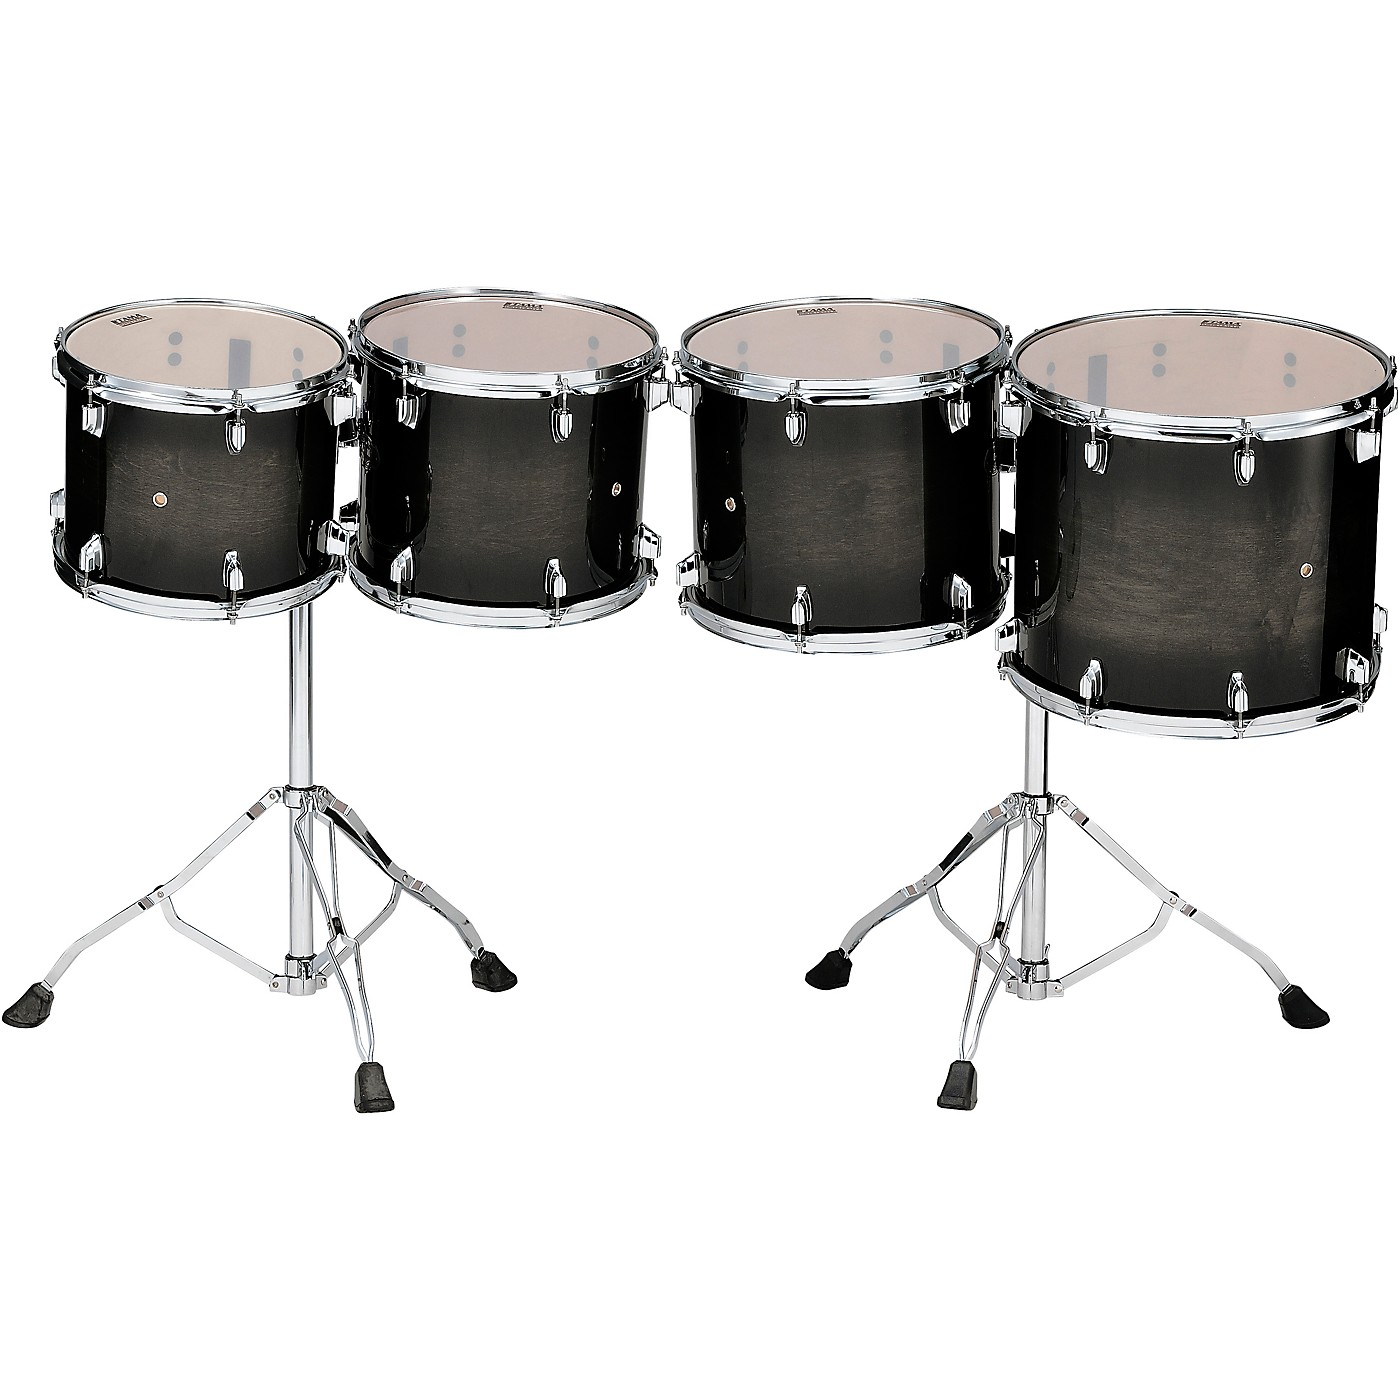 TAMA Low-Pitched Concert Tom Set With Stands (Double-Headed) thumbnail